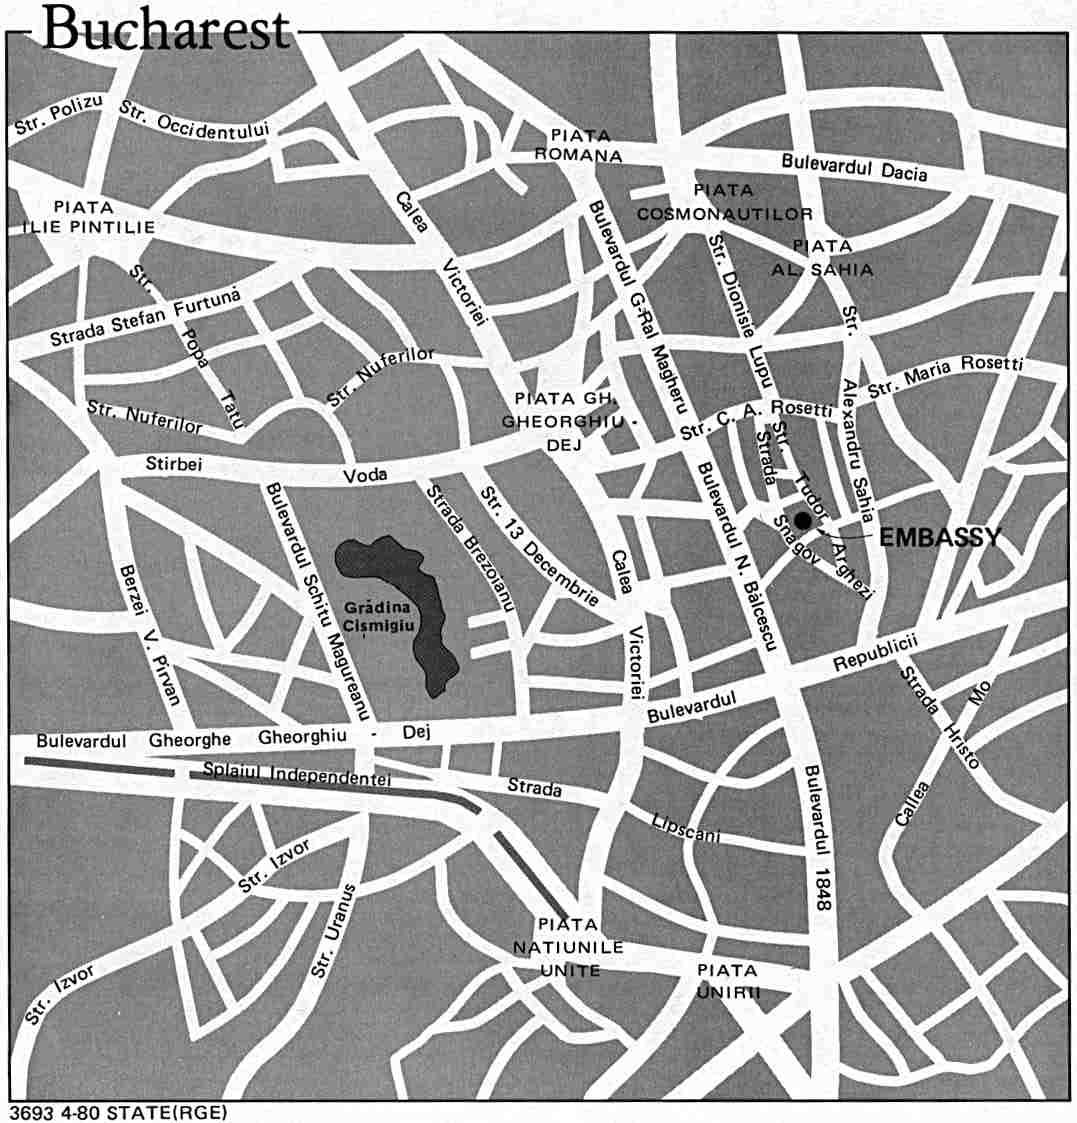 Bucharest (1980) large map